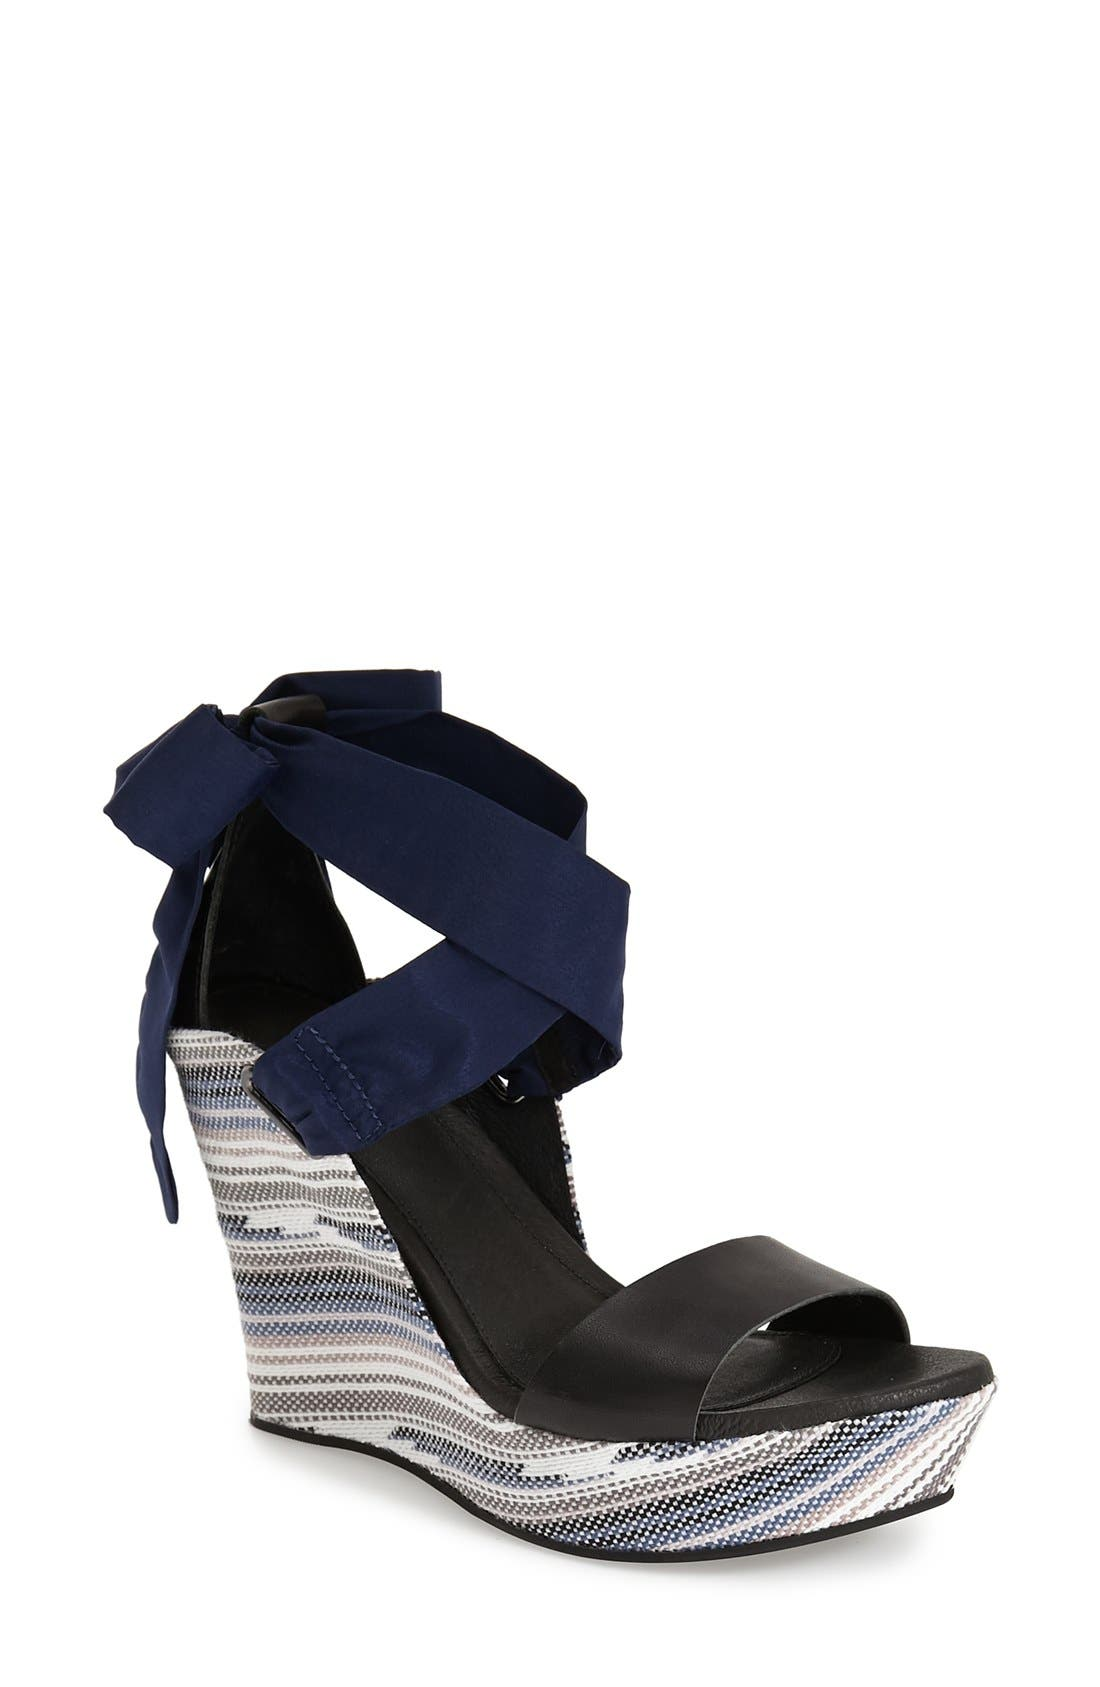 Alternate Image 1 Selected - UGG® 'Jules Serape' Platform Wedge Sandal (Women)